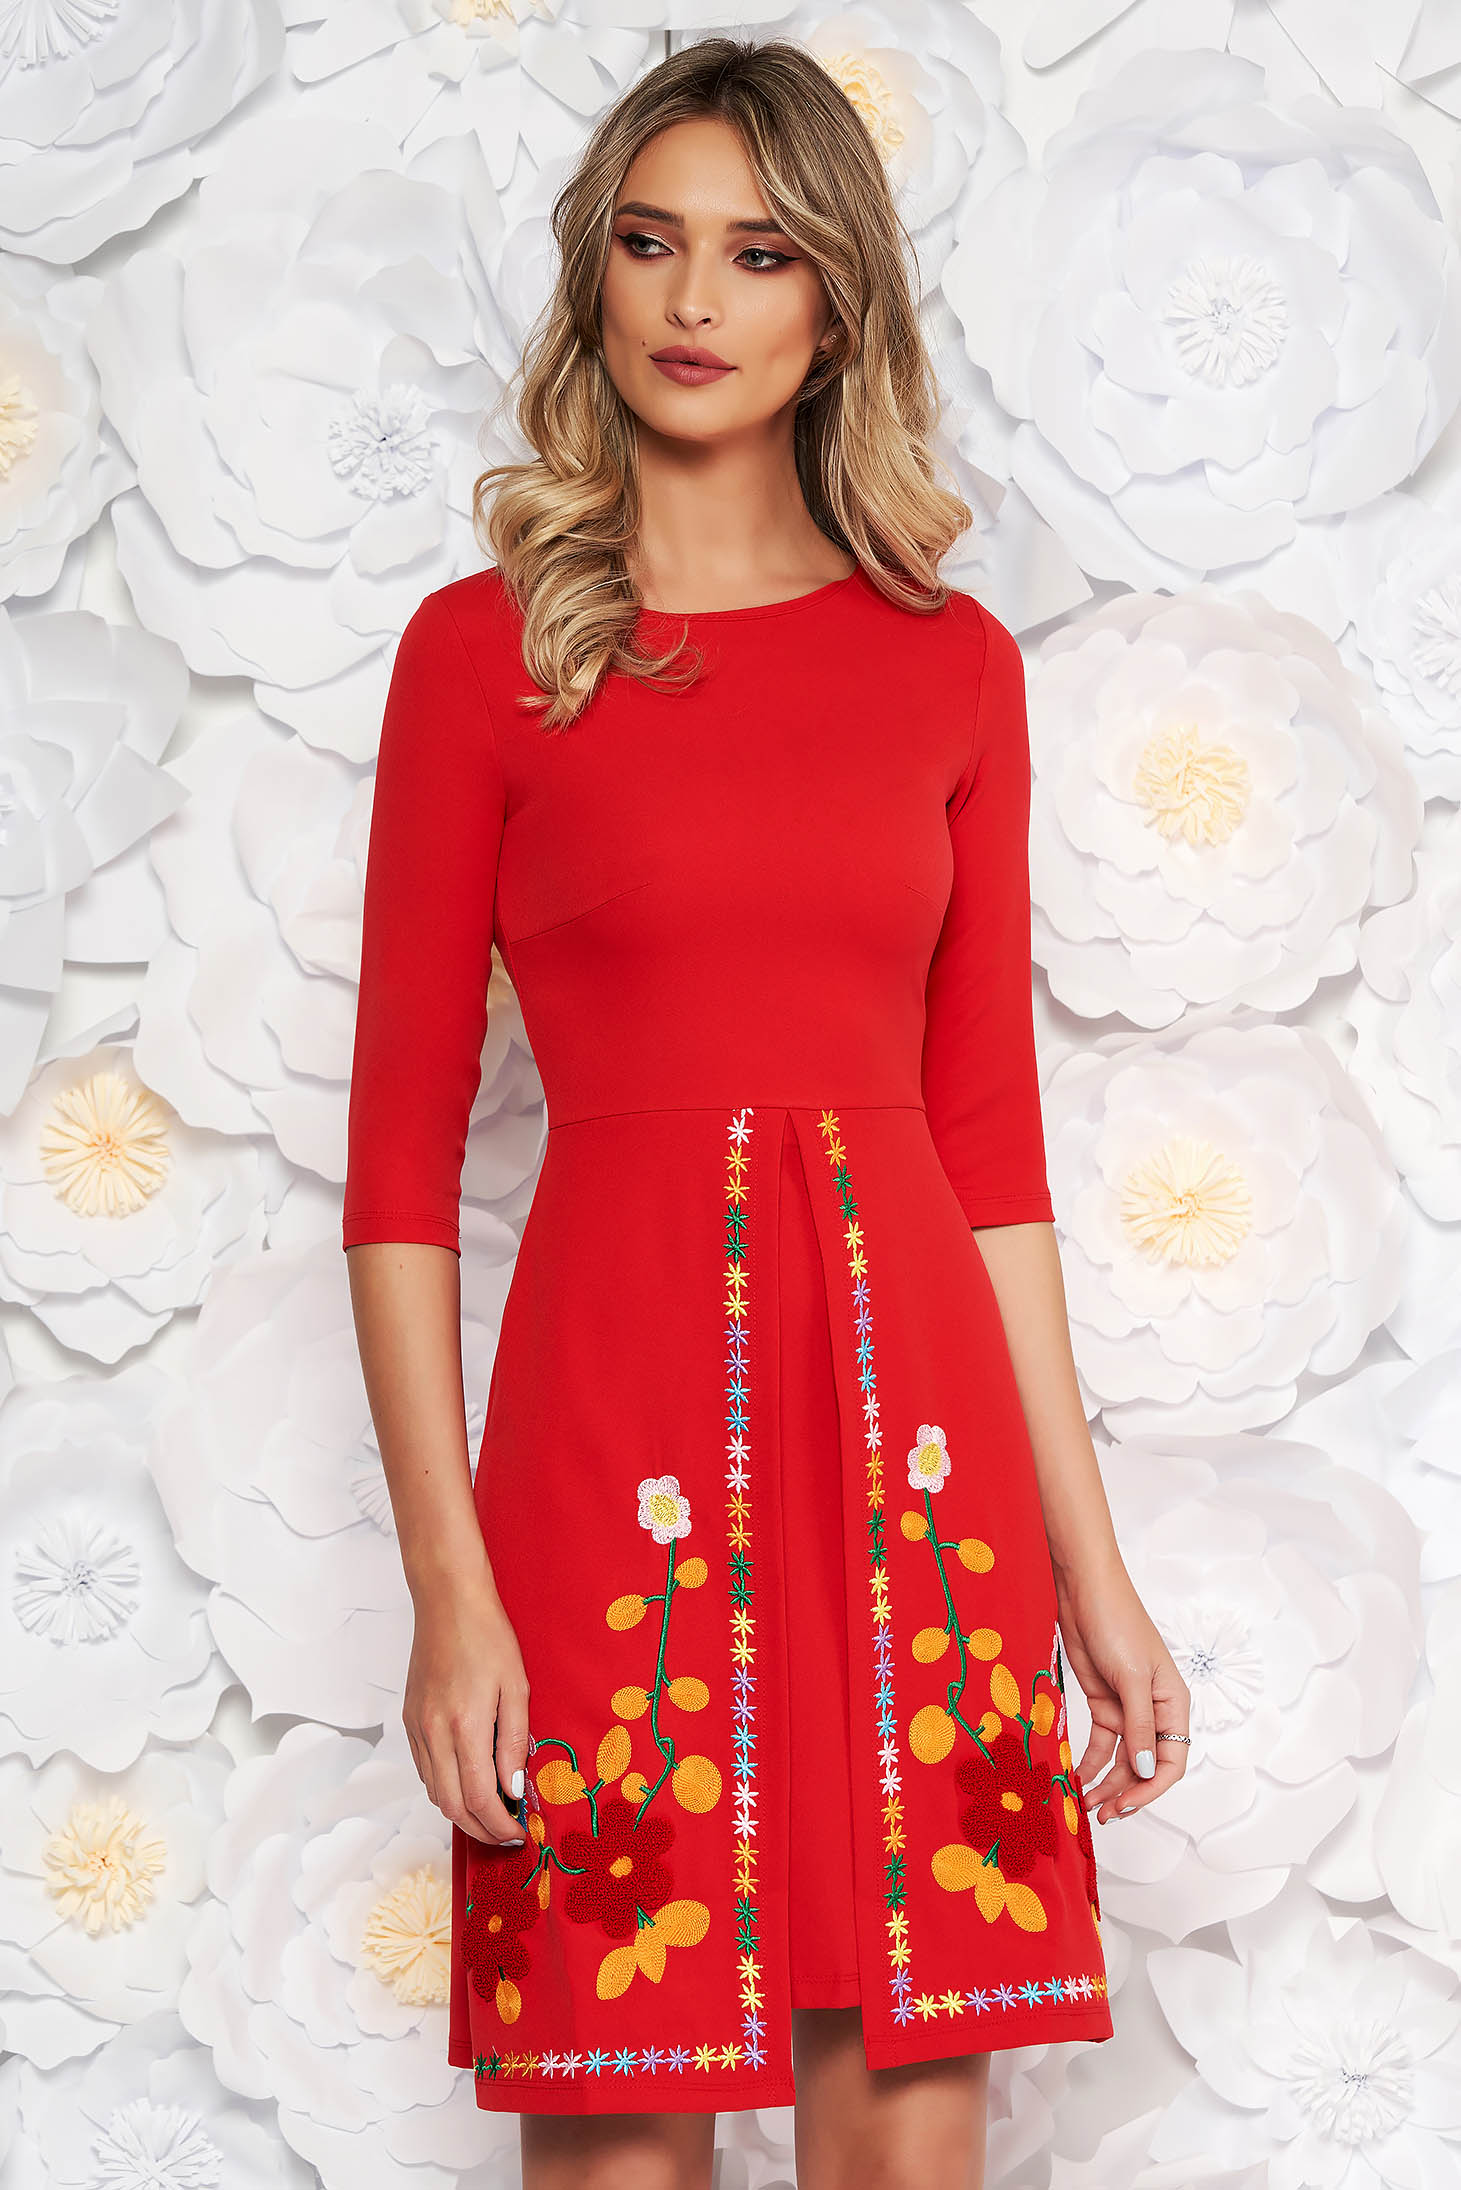 Red daily dress slightly elastic fabric with embroidery details